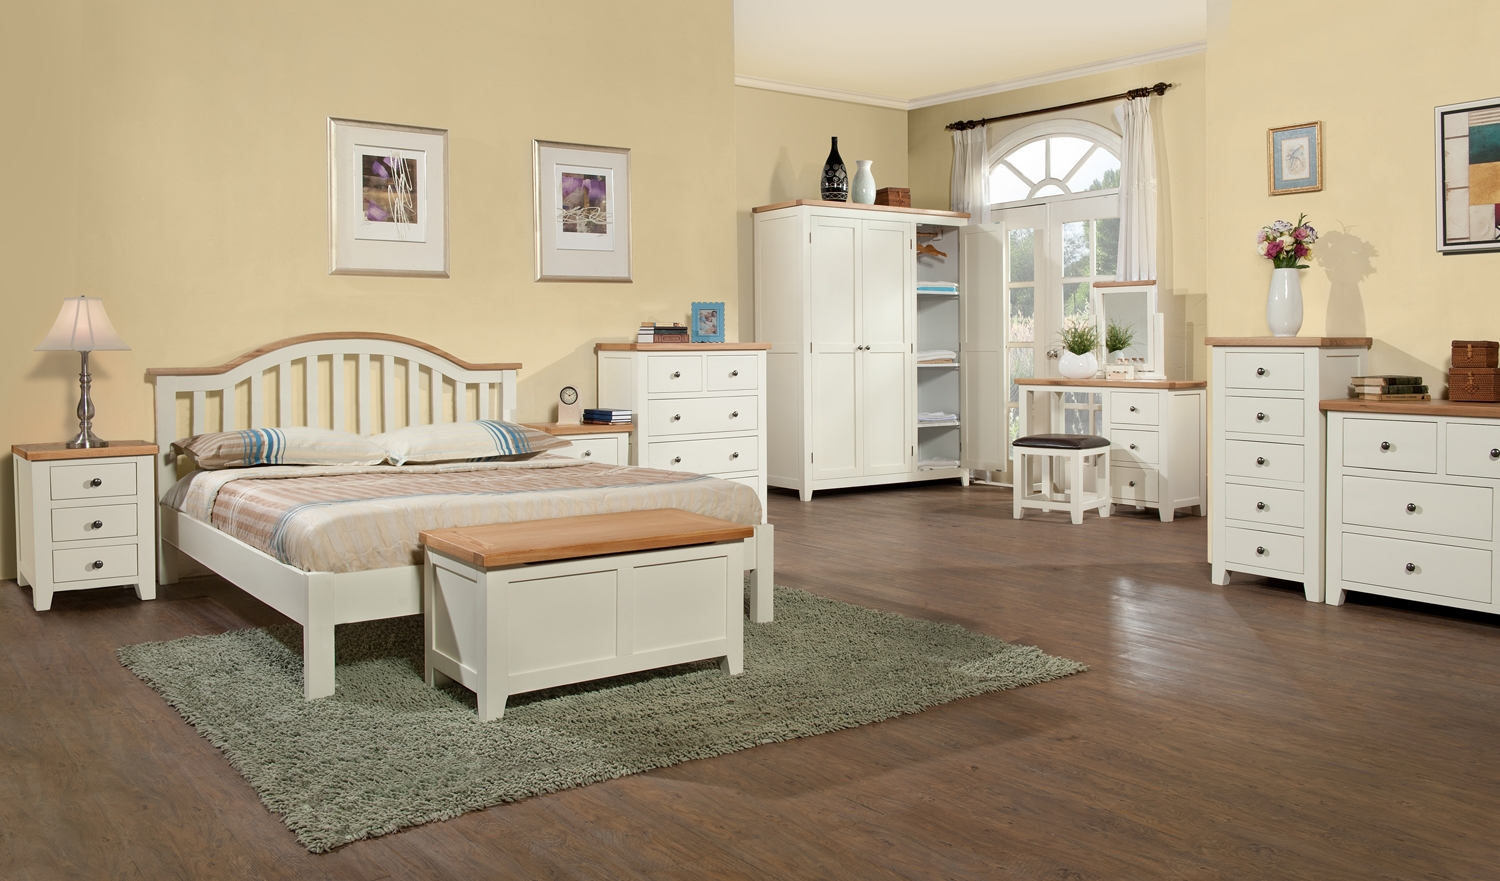 Chic white wood bedroom furniture eton painted blanket box oak furniture solutions mczfuow